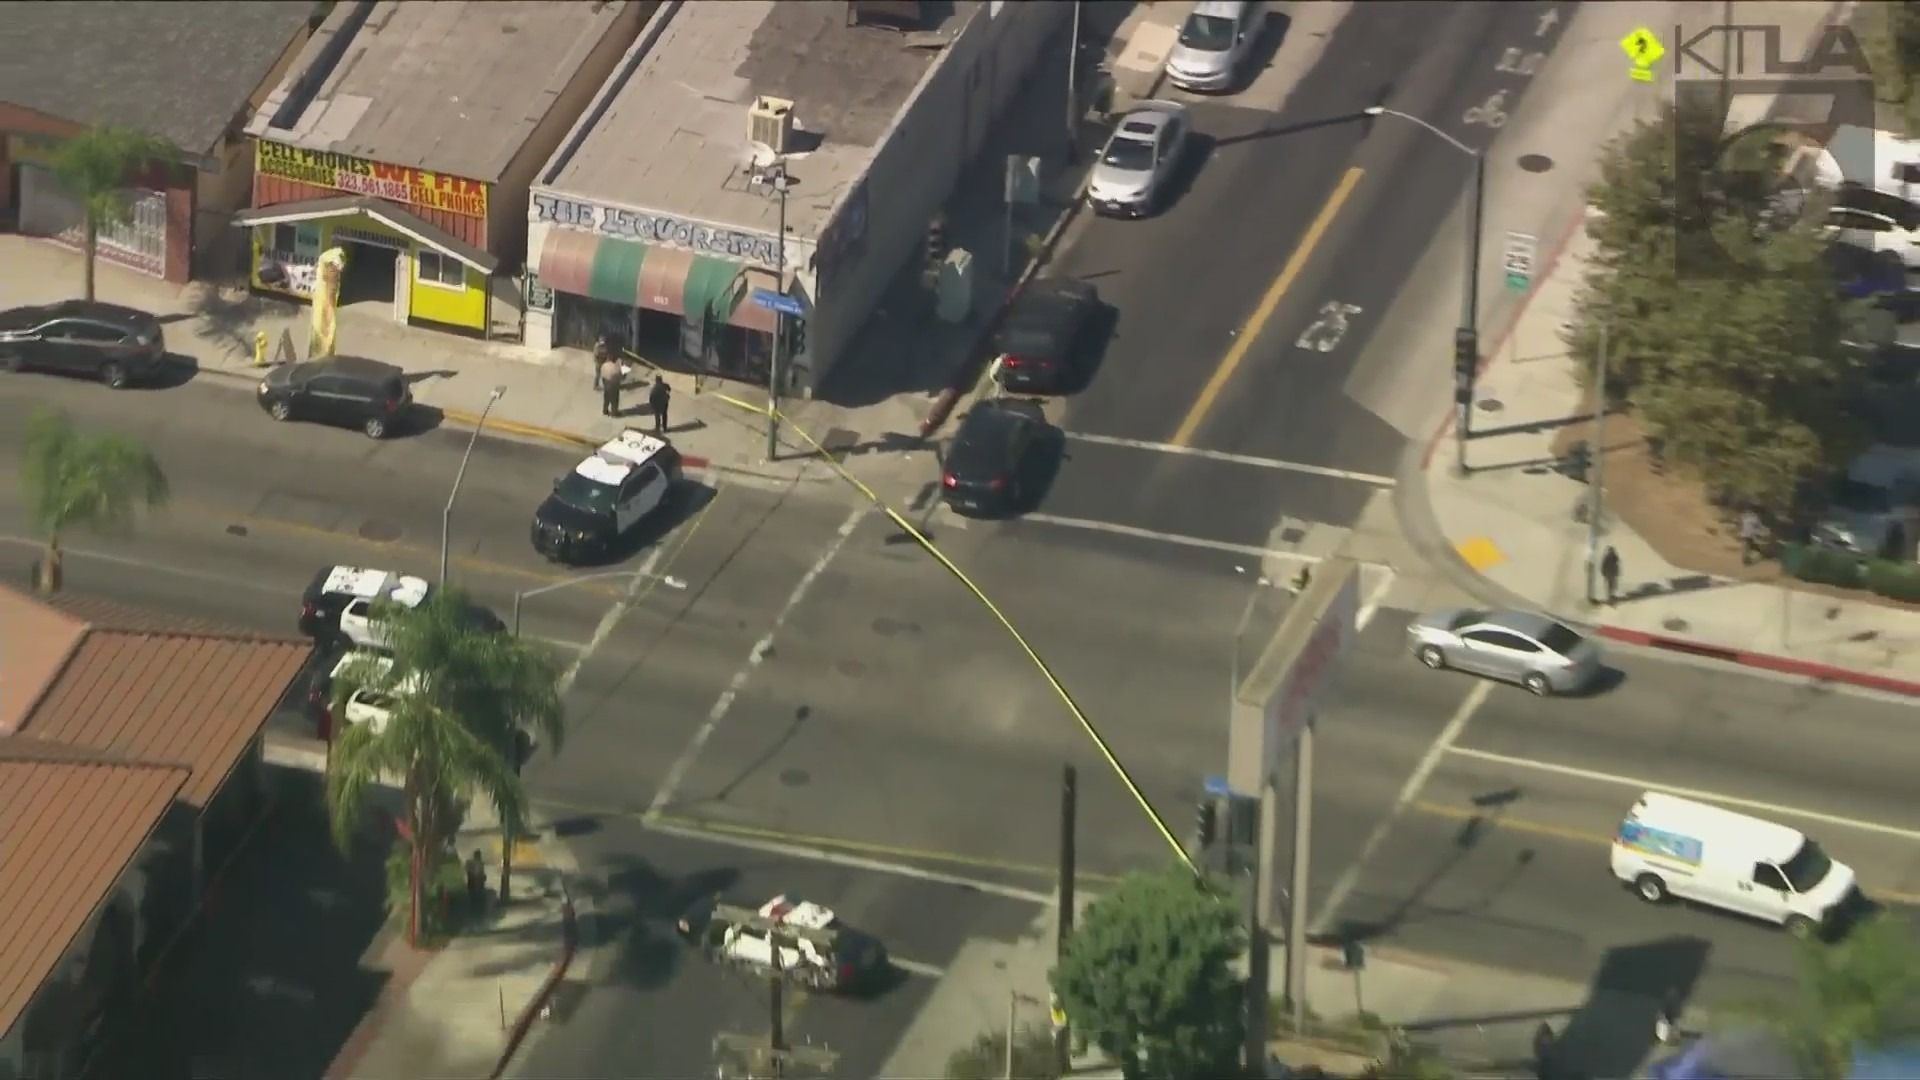 Authorities investigate the scene of a police shooting that left a man wounded in East Los Angeles on Sept. 3, 2021. (KTLA)